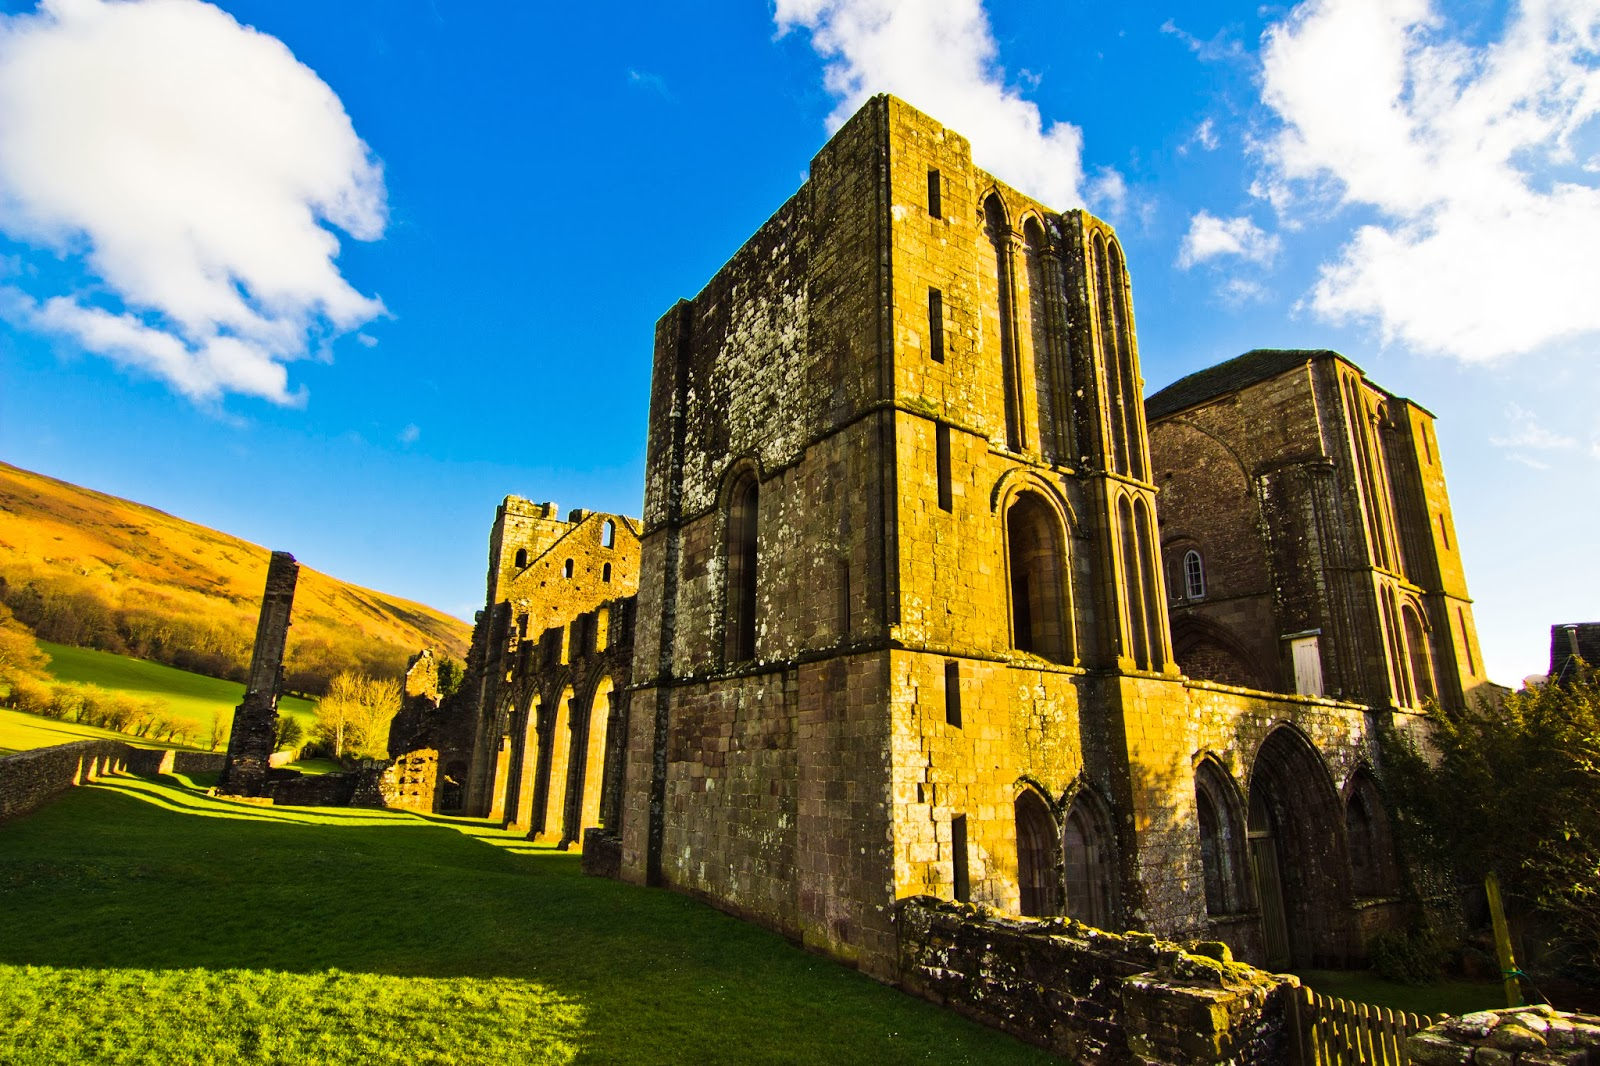 Llanthony Priory, Vale of Ewyas (Black Mountains)